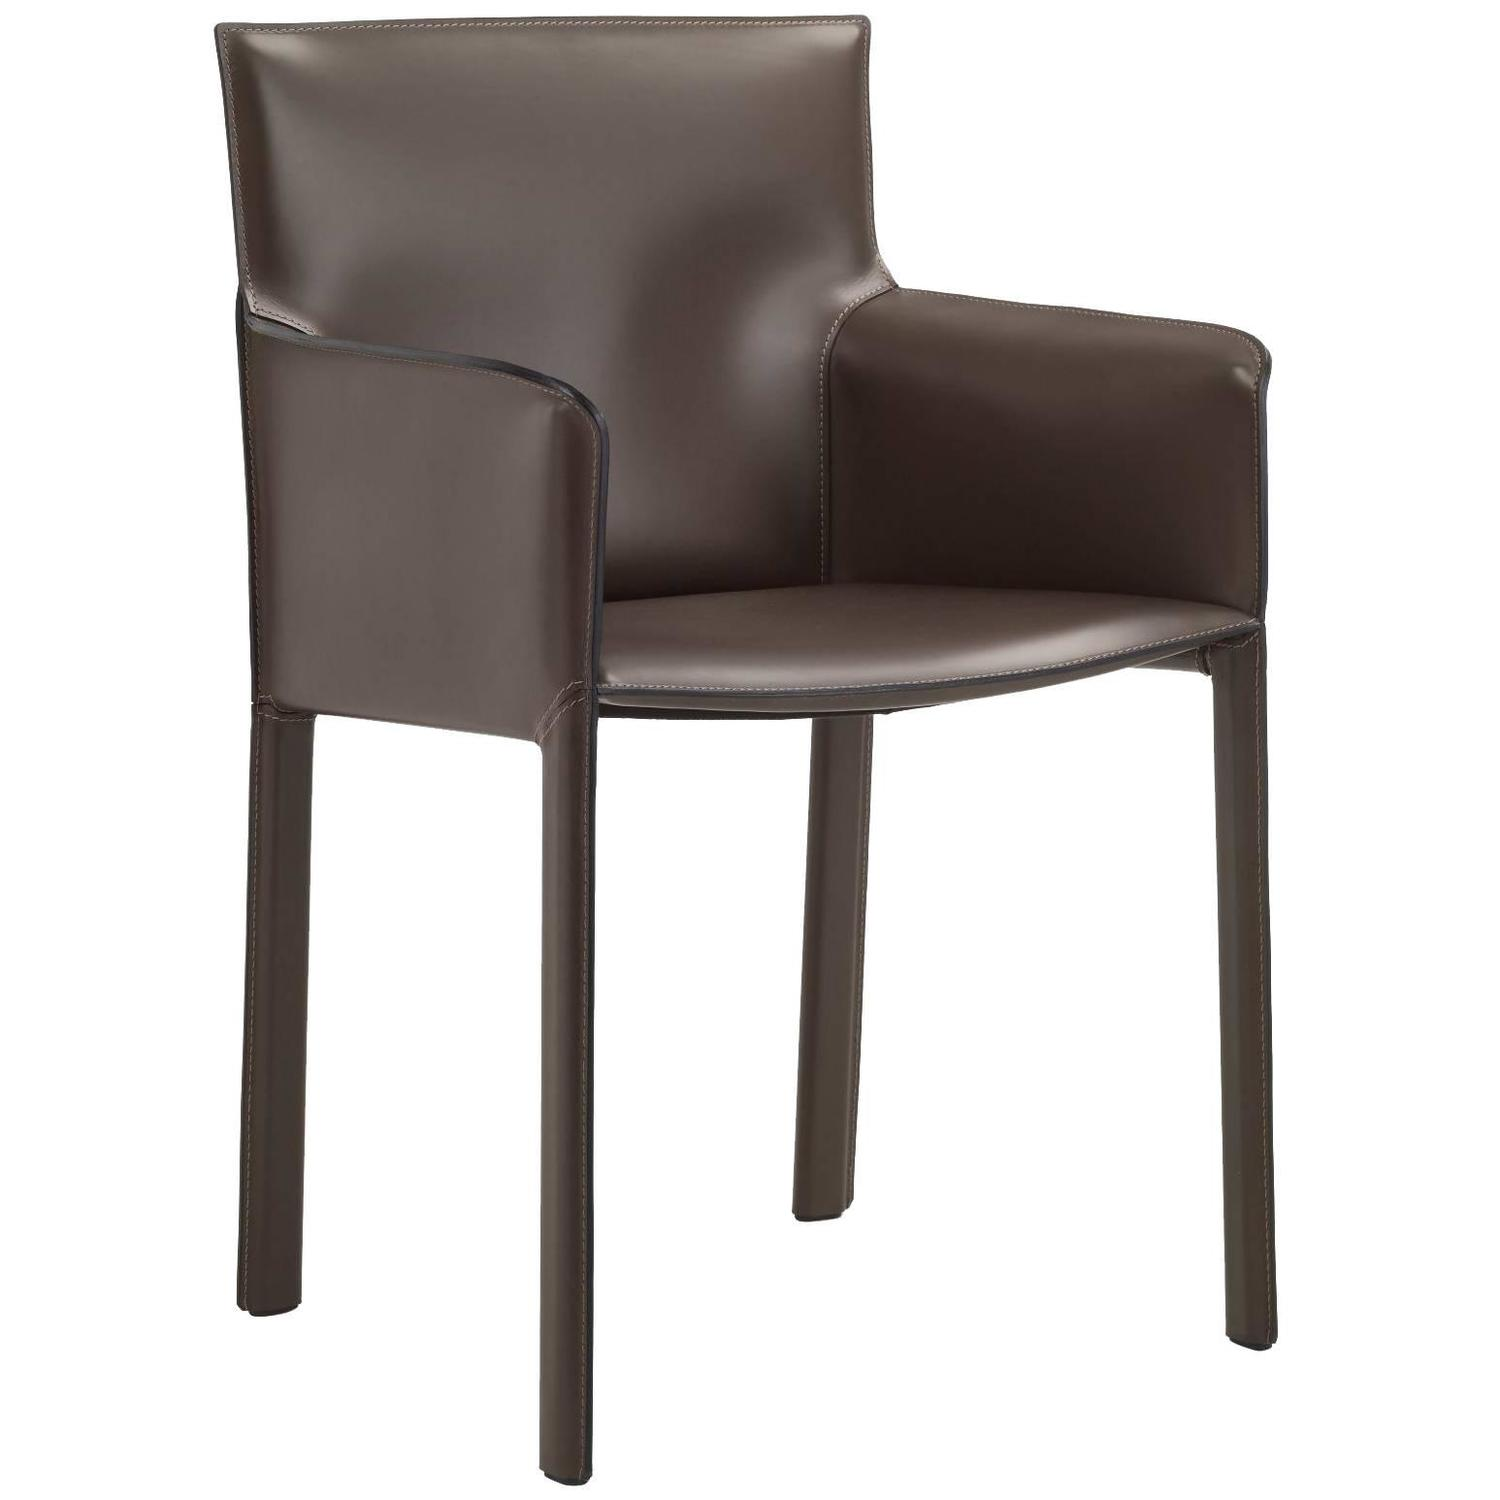 Italian Dining Chairs Modern Italian Dining Chair Italian Furniture Design